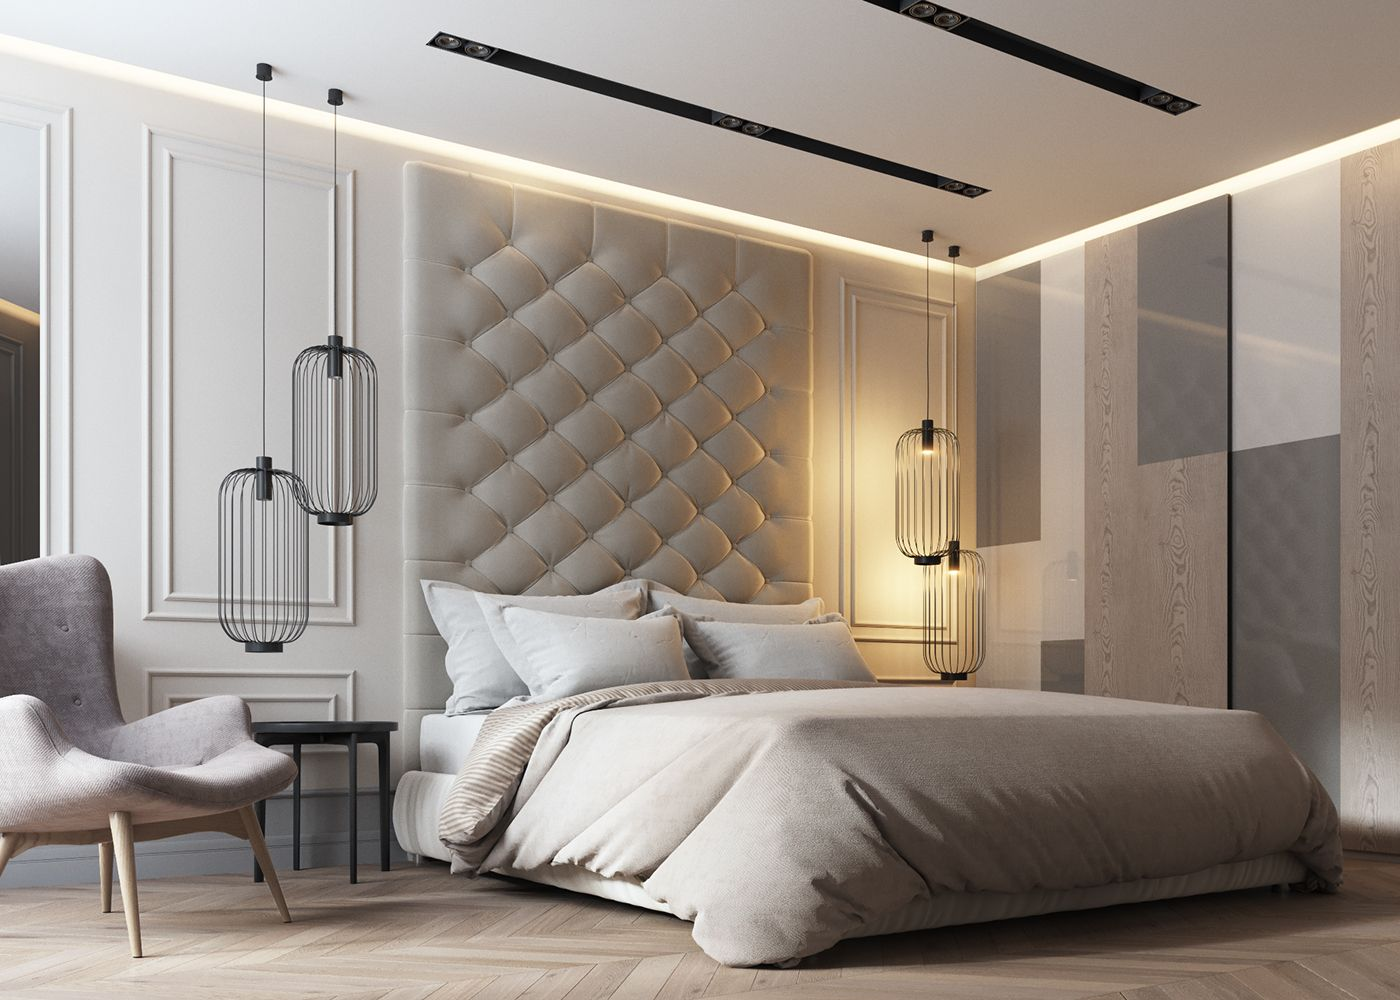 Apartments in UkraineDesign: DE&DE interior studioVisualization: Max  Tiabys, Max Shpak (VizLine Studio. Contemporary Bedroom DesignsModern ...